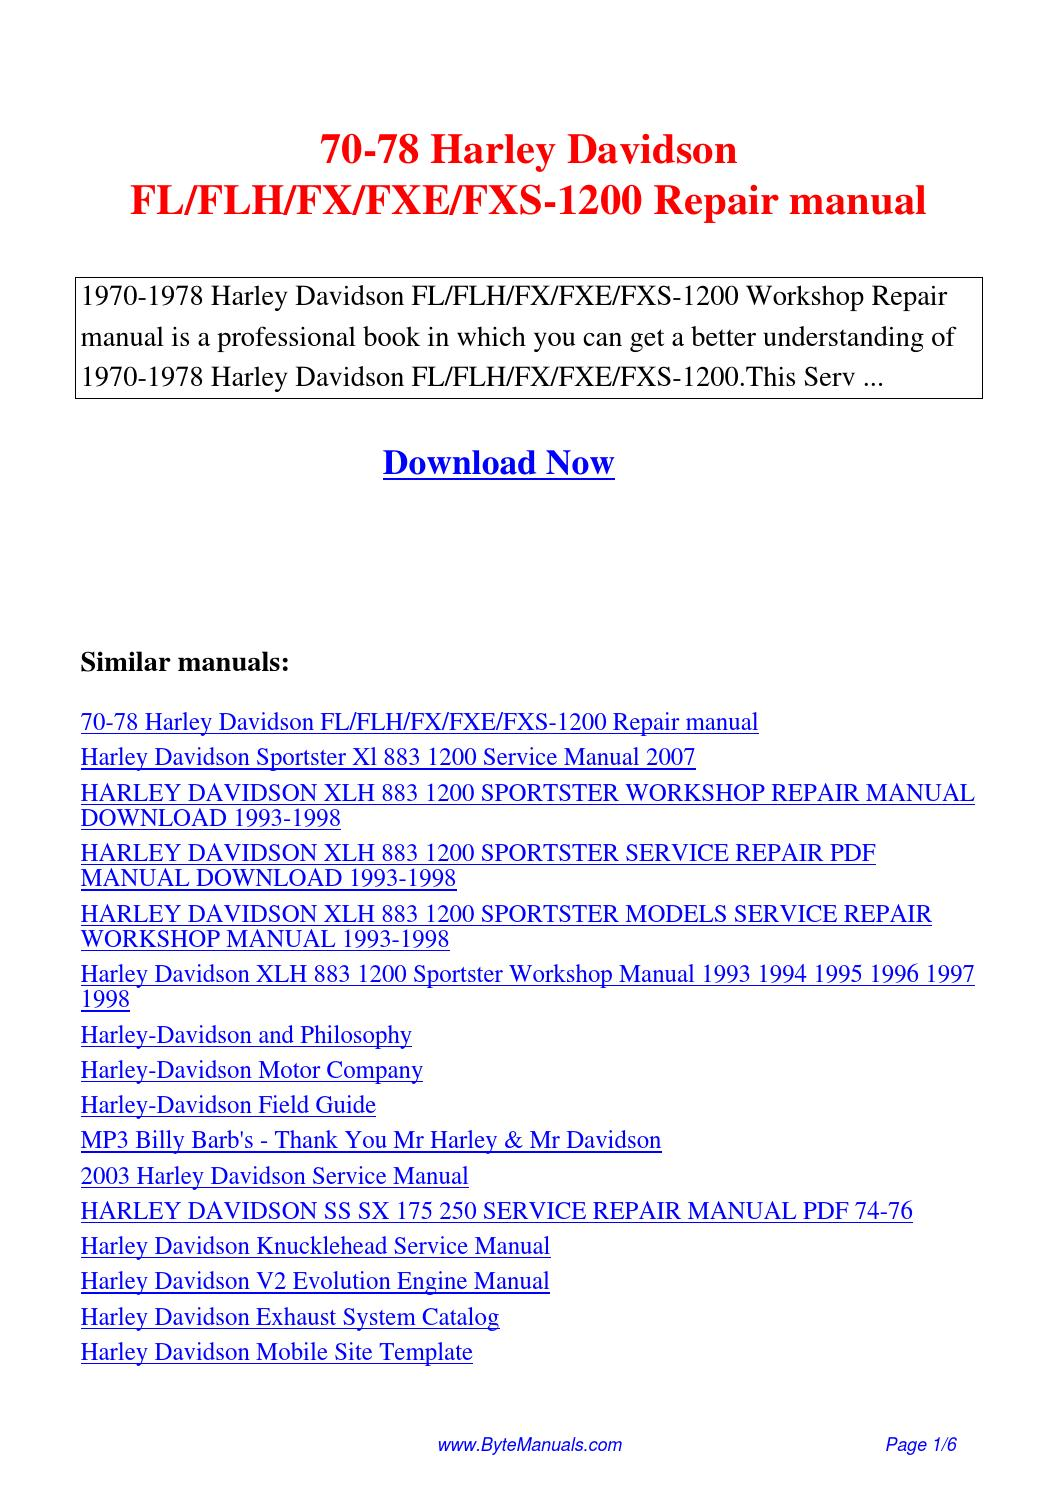 70-78 Harley Davidson FL FLH FX FXE FXS-1200 Repair manual.pdf by Ging Tang  - issuu